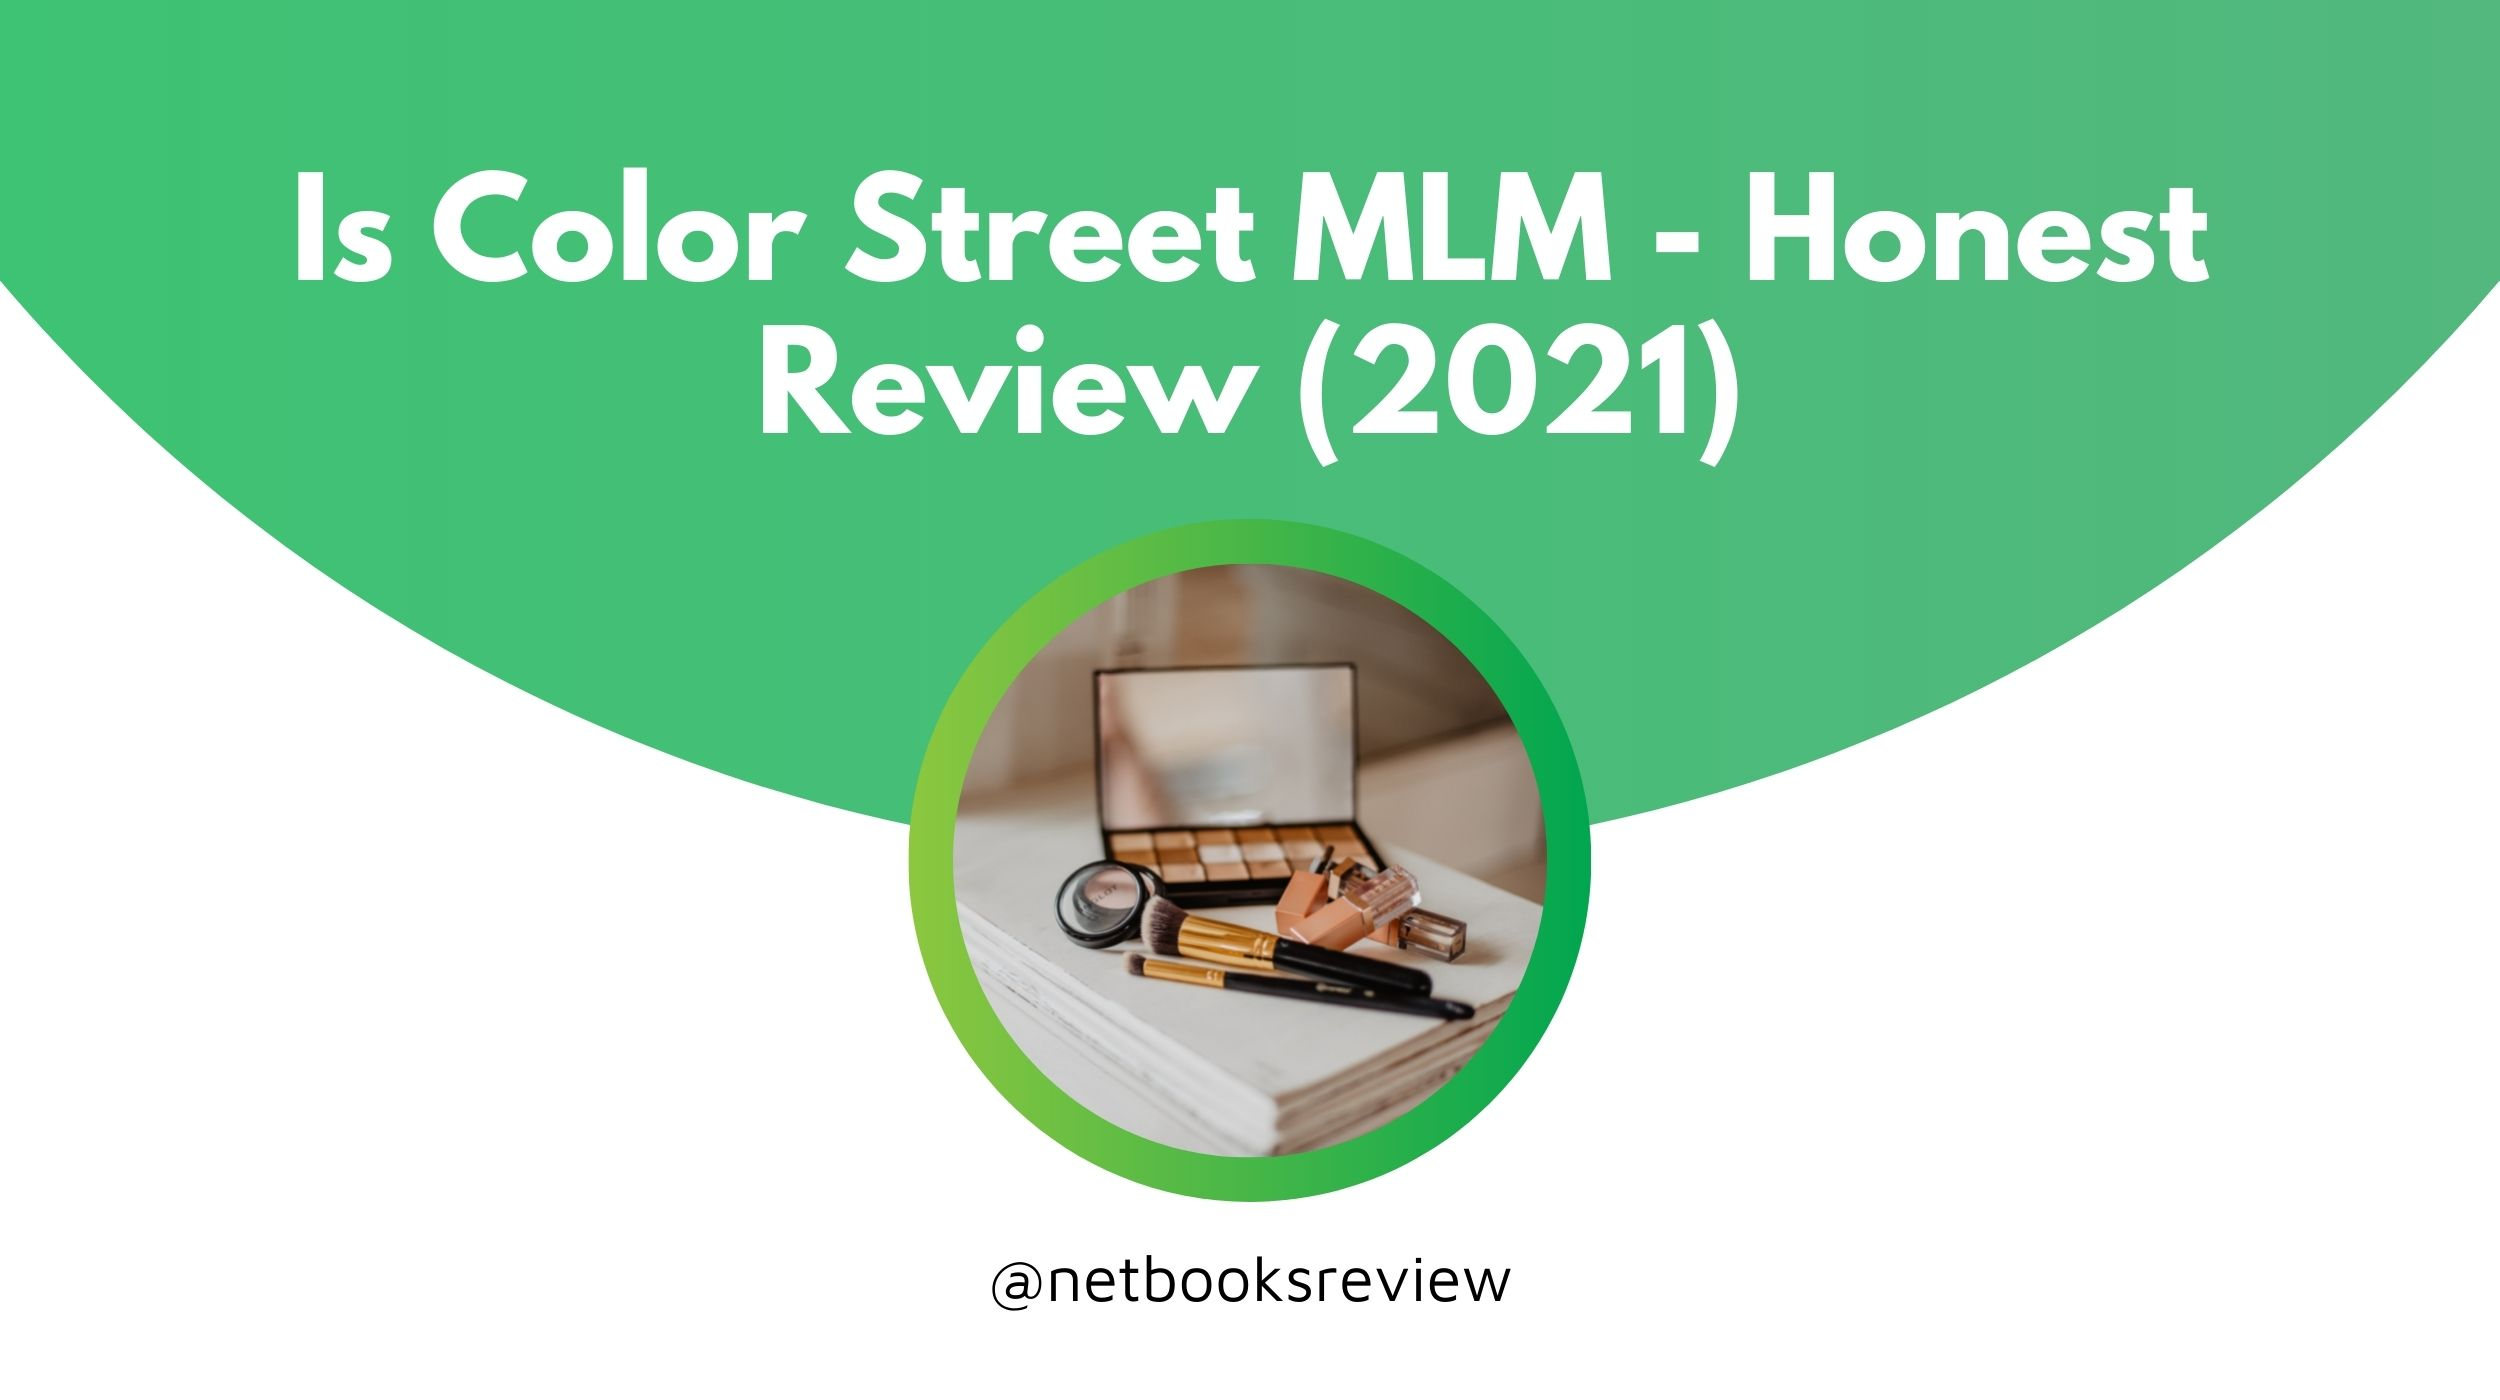 is color street mlm